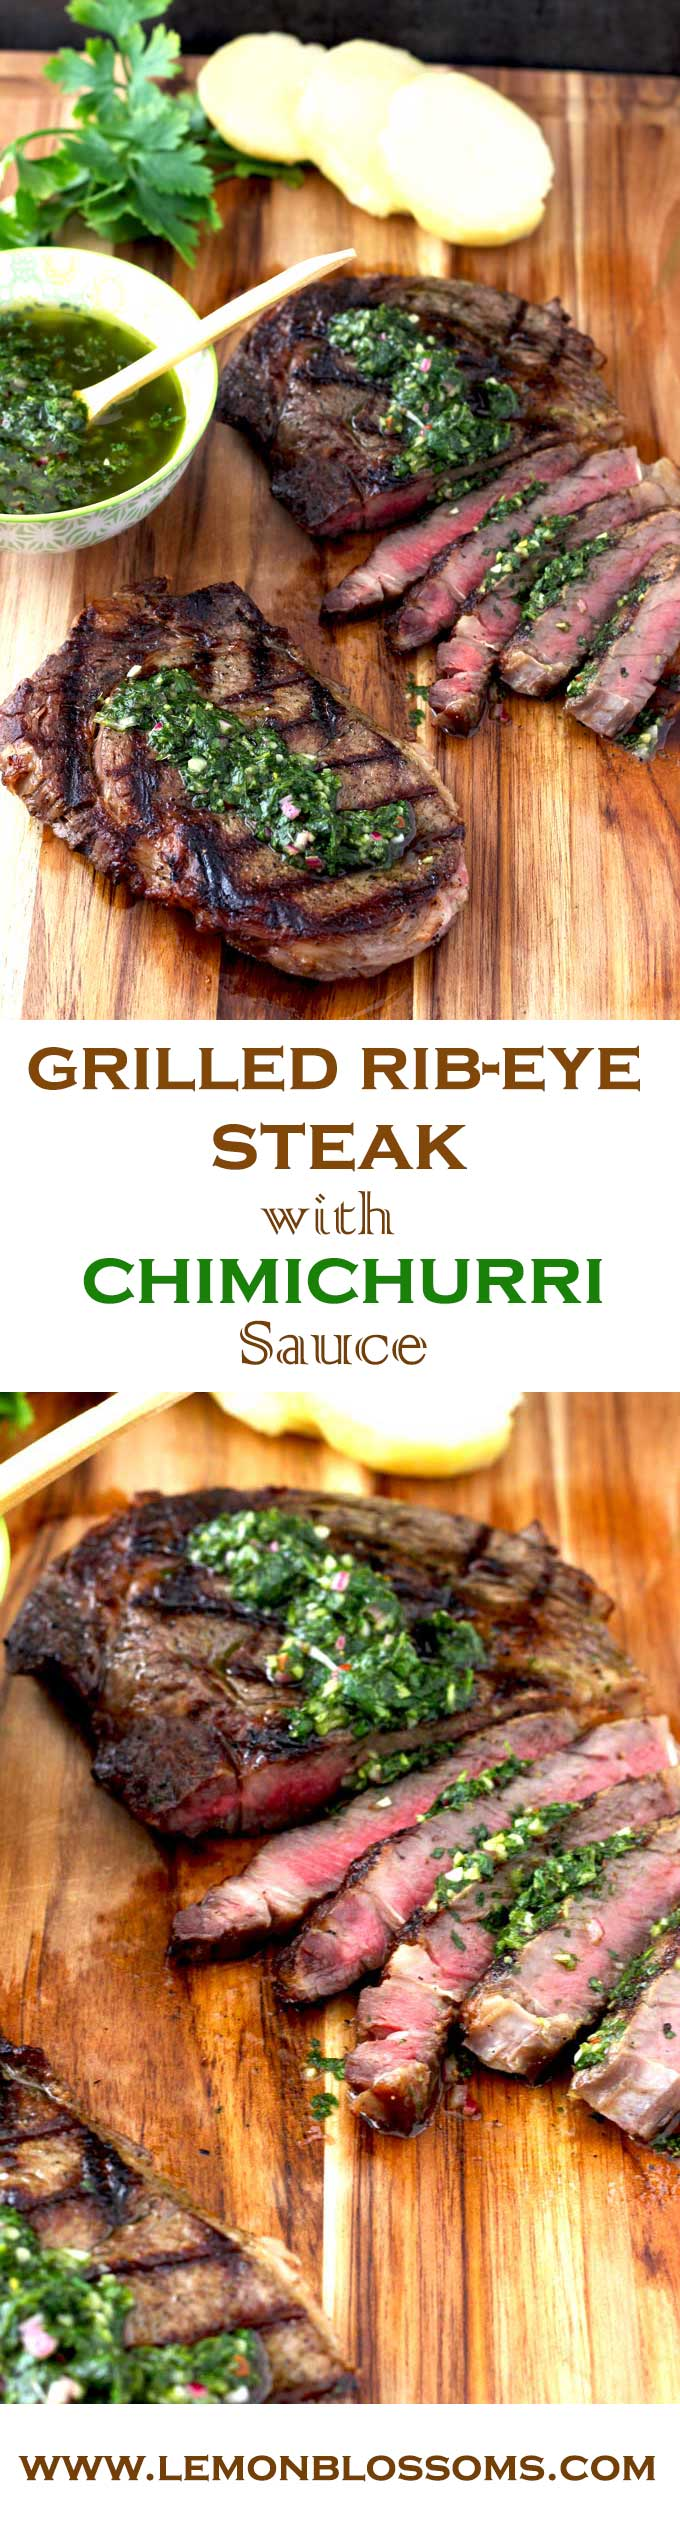 Grilled Rib-Eye Steaks with Chimichurri Sauce | Lemon Blossoms